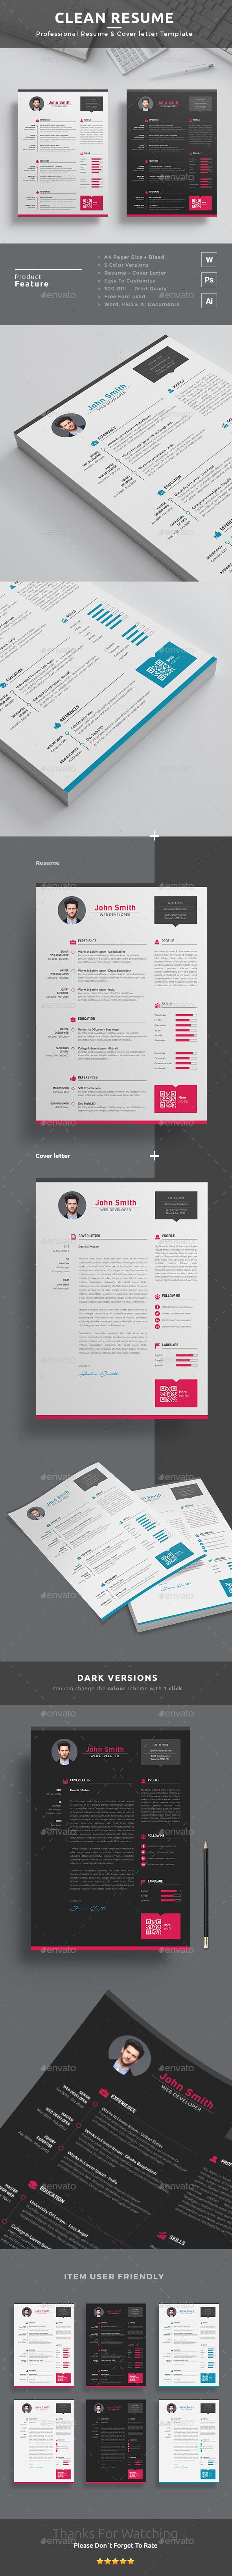 Best ResumeCV Design Template Free Cover